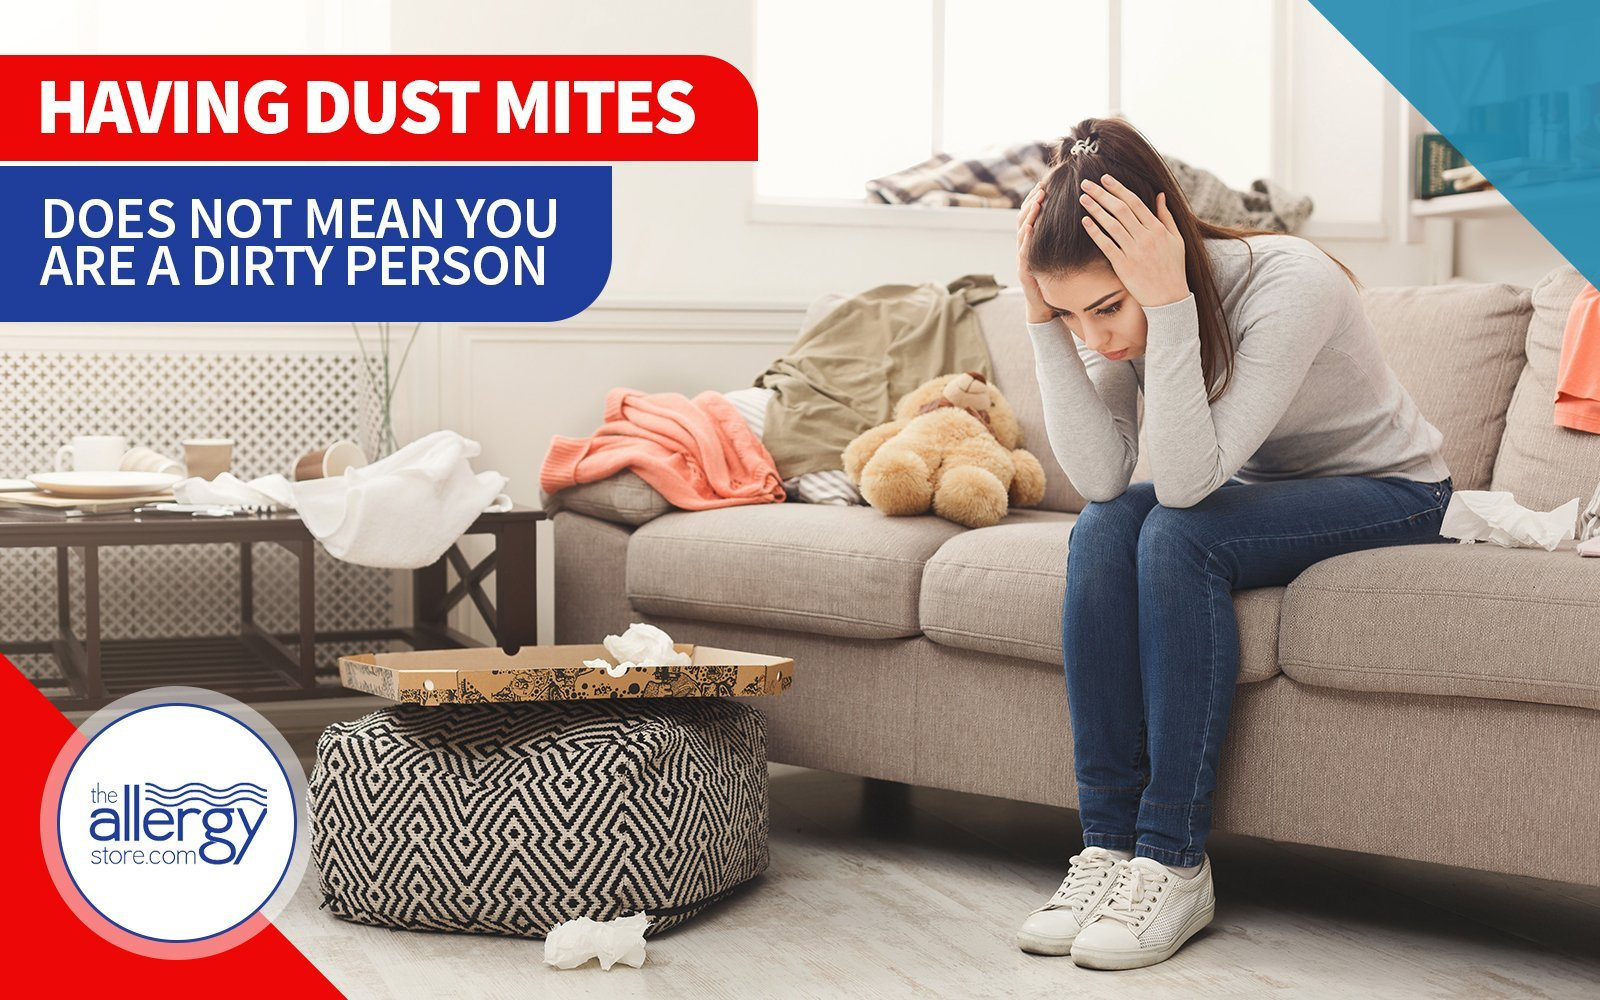 Having Dust Mites Does Not Mean You are a Dirty Person